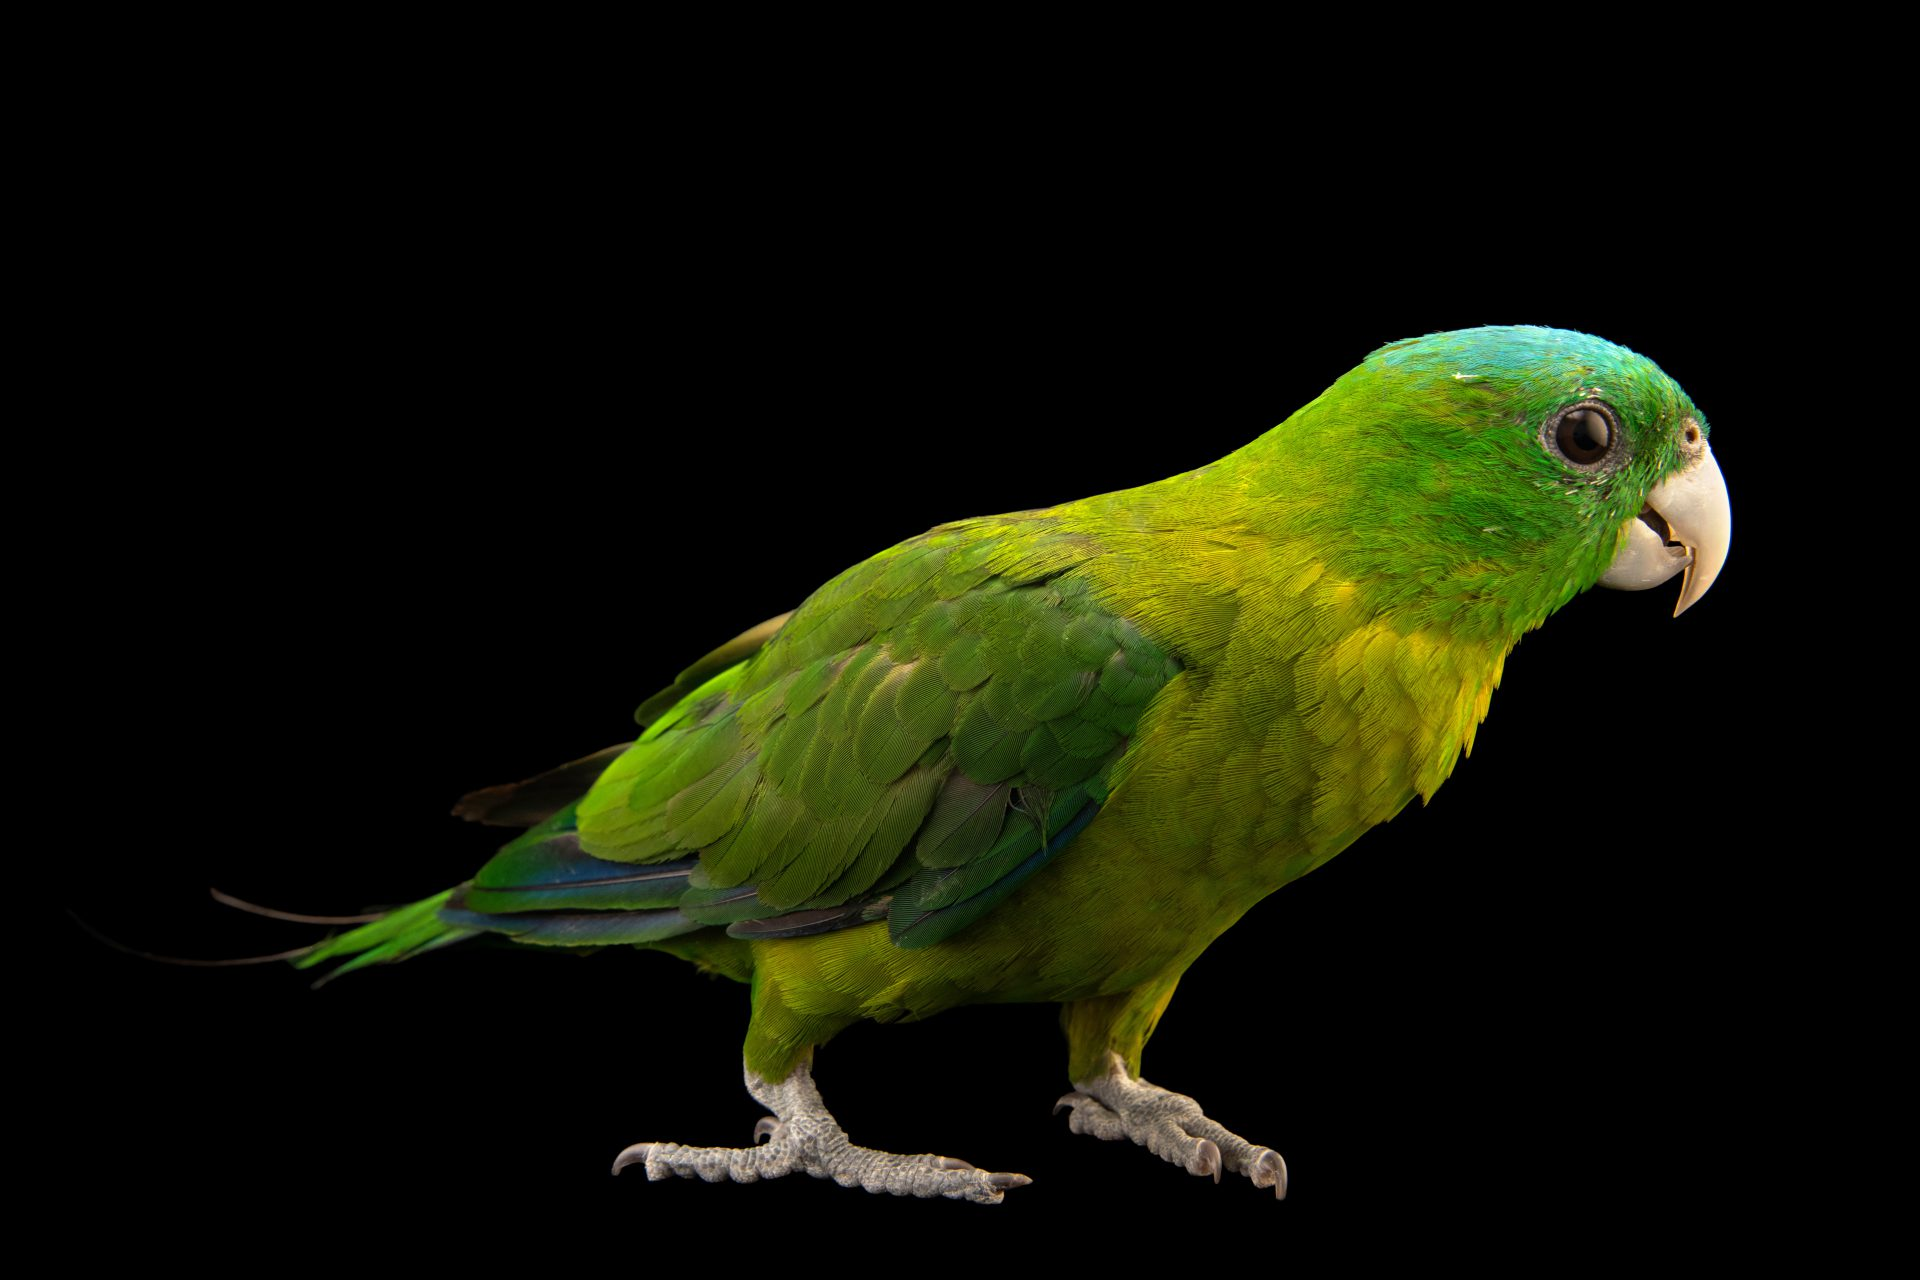 Photo: A blue-crowned racket-tail parrot (Prioniturus discurus discurus) at the Avilon Zoo.